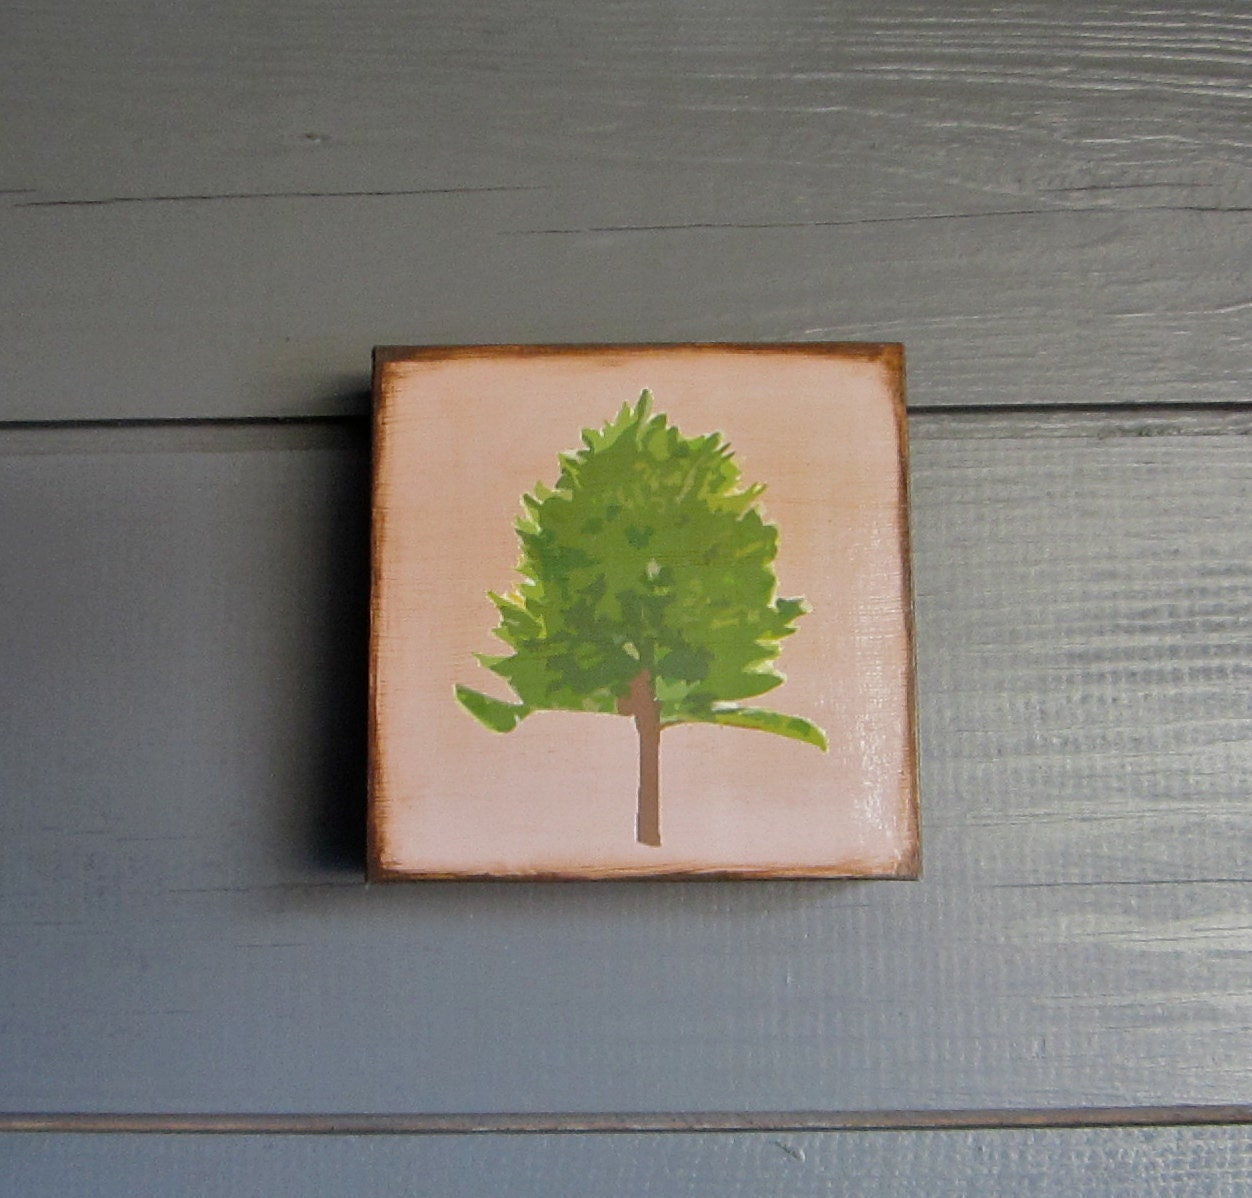 Forest Woodland Art Blocks 5x5 Norway Pine Autumn Fall Tree Nature Brown Wood Green Olive Minnesota State - redtilestudio